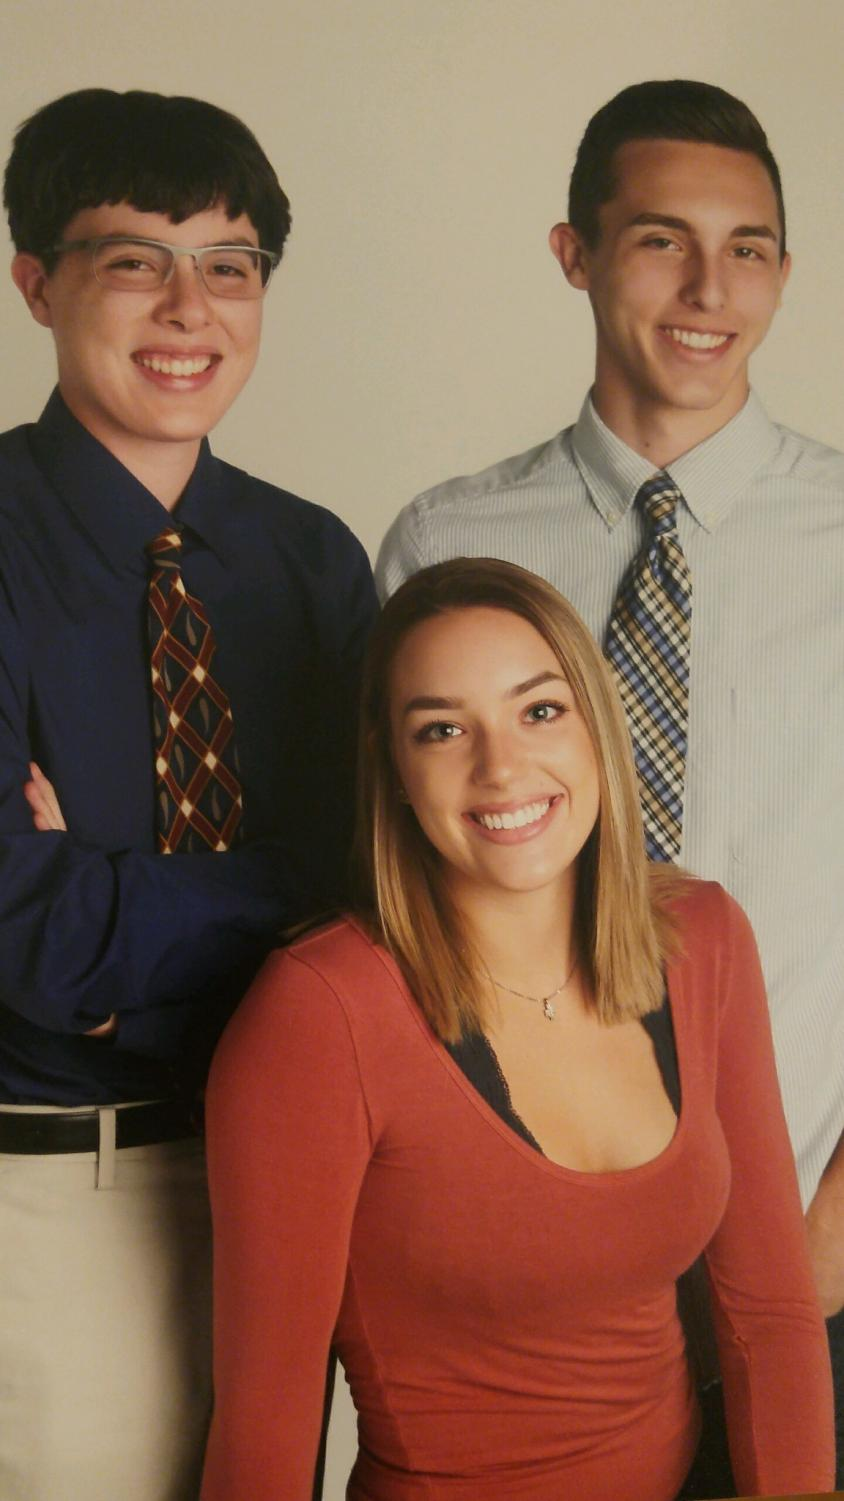 Kyle Grenier (left), Olivia Grenier (middle), and Steven Grenier (right), are senior triplets. While they are siblings, these three students could not be more different.